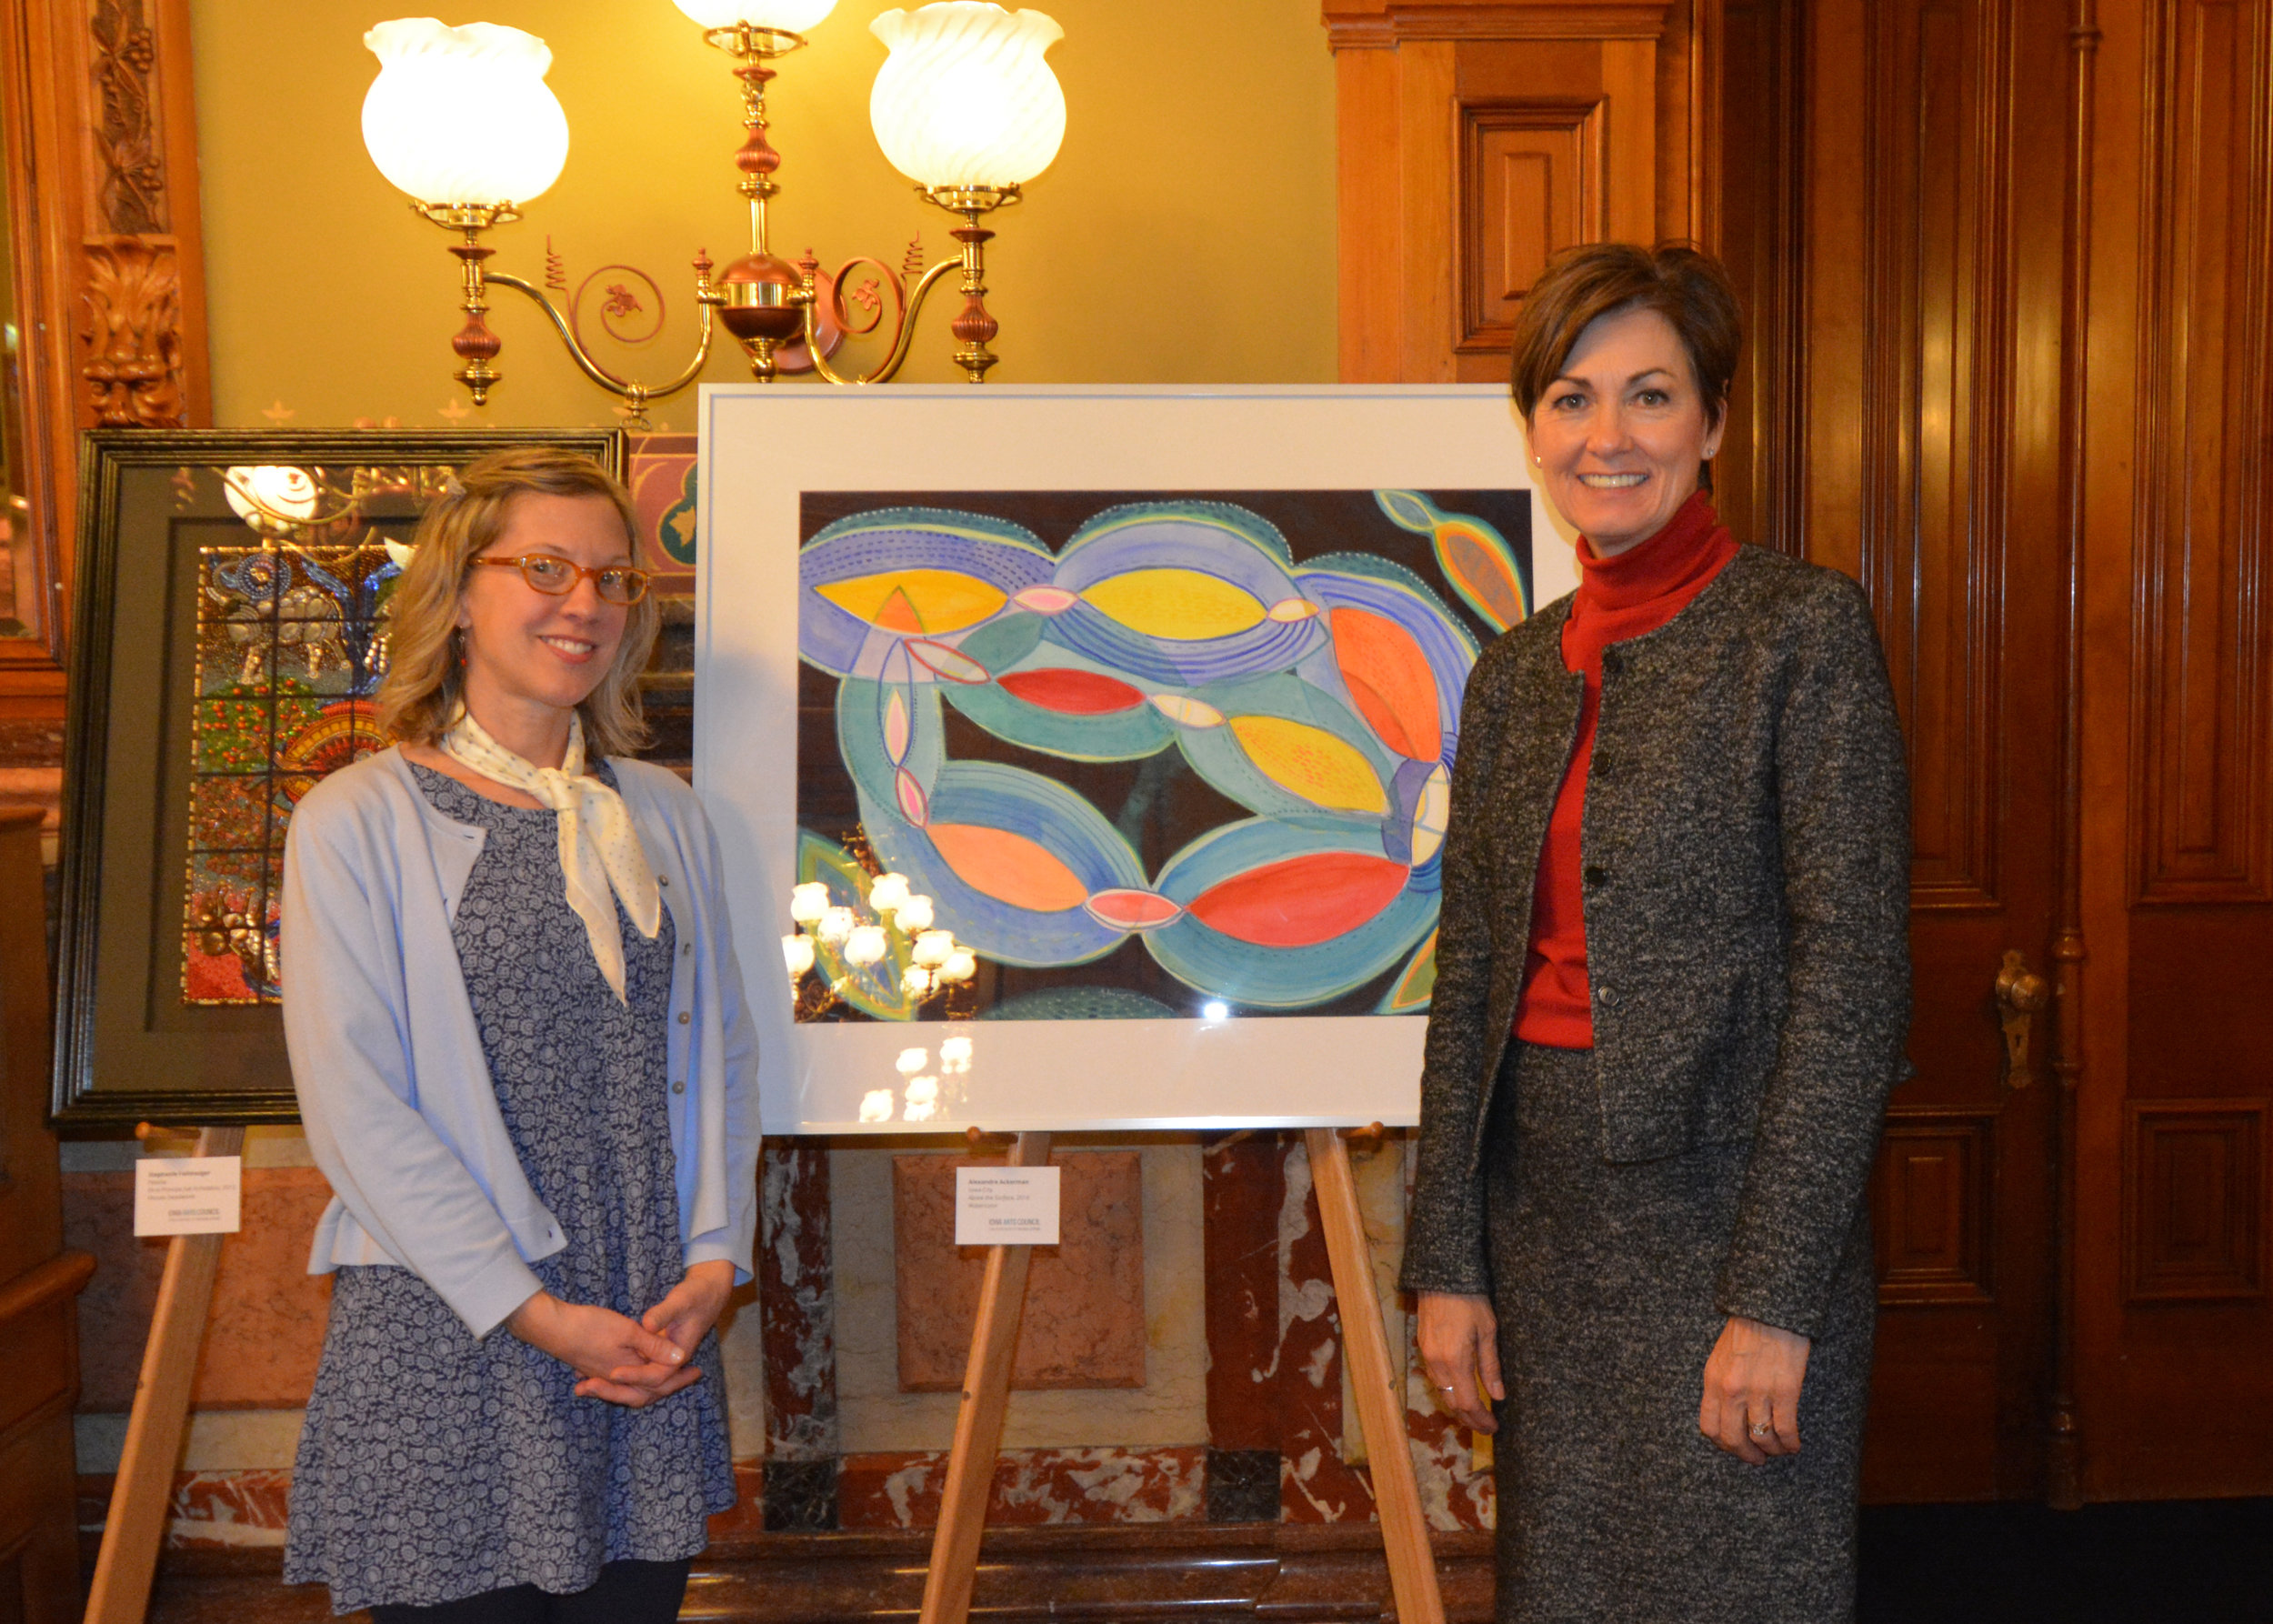 I'm honored to have two watercolors on display at the Capitol in Des Moines until June of 2018! It was wonderful to meet the two other women and discuss our work with Governor Kim Reynolds in her formal office this past week. What an amazing place to show my work!